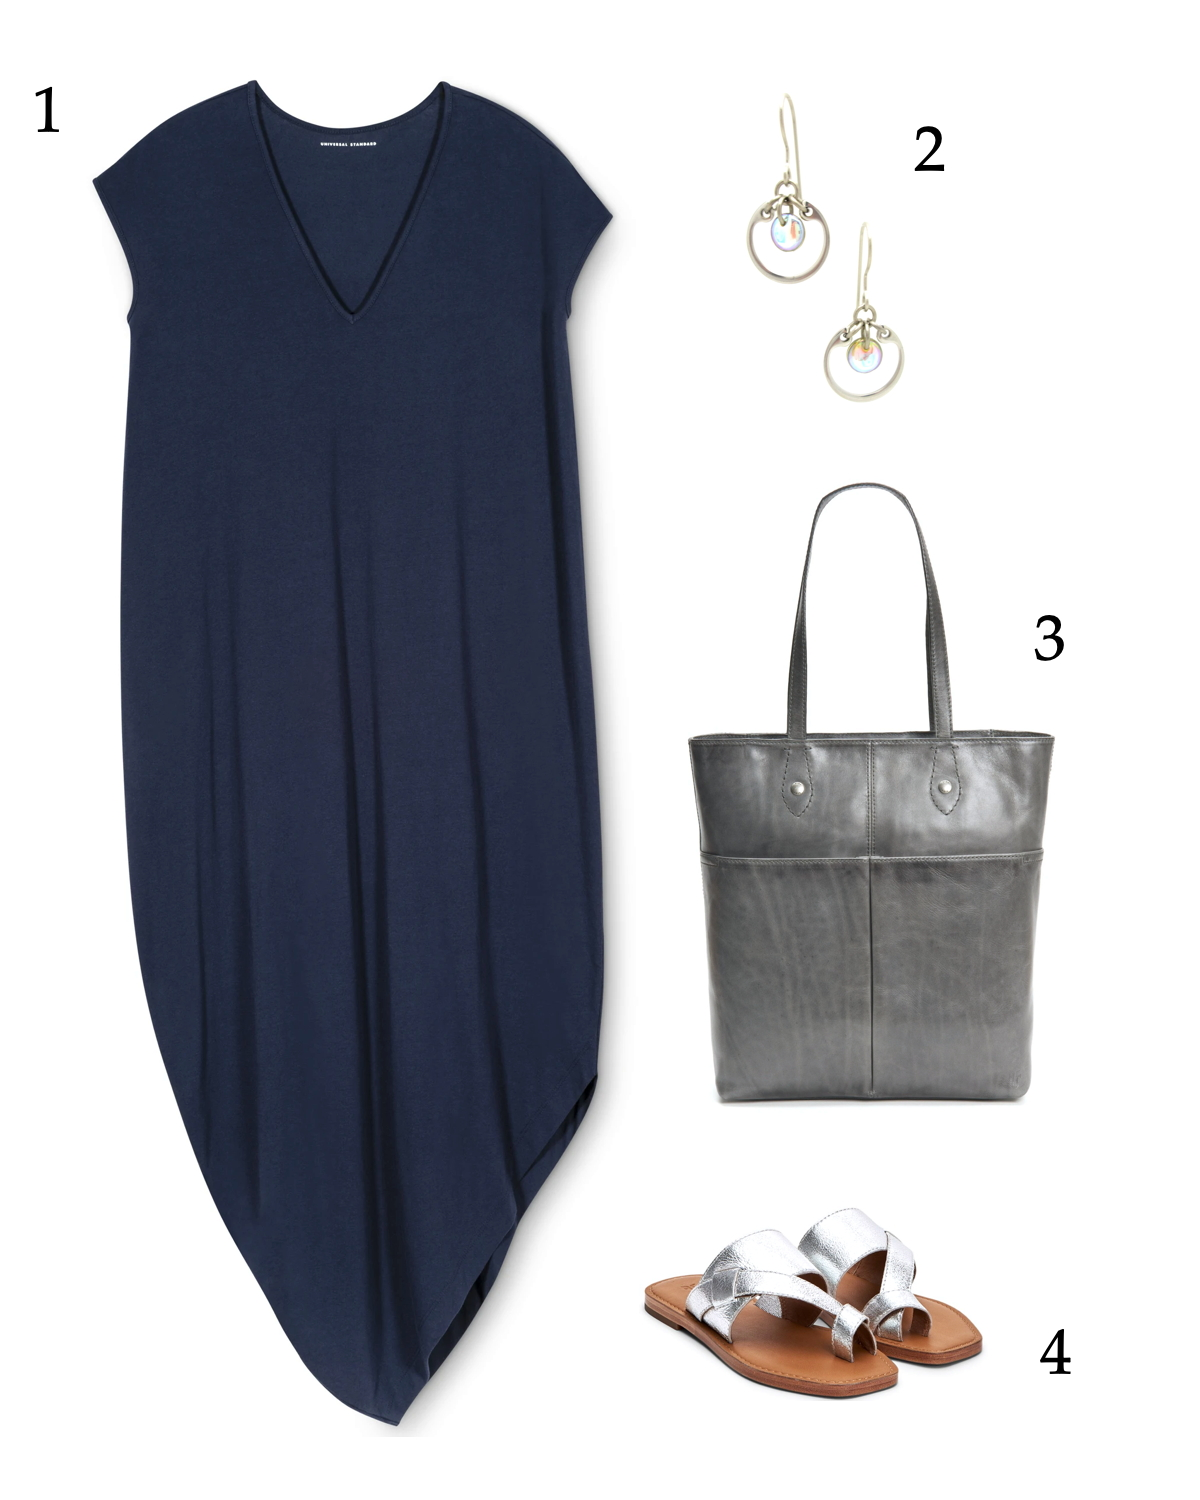 Summer outfit inspiration: an asymmetrical navy dress with silver accessories and simple classic earrings.